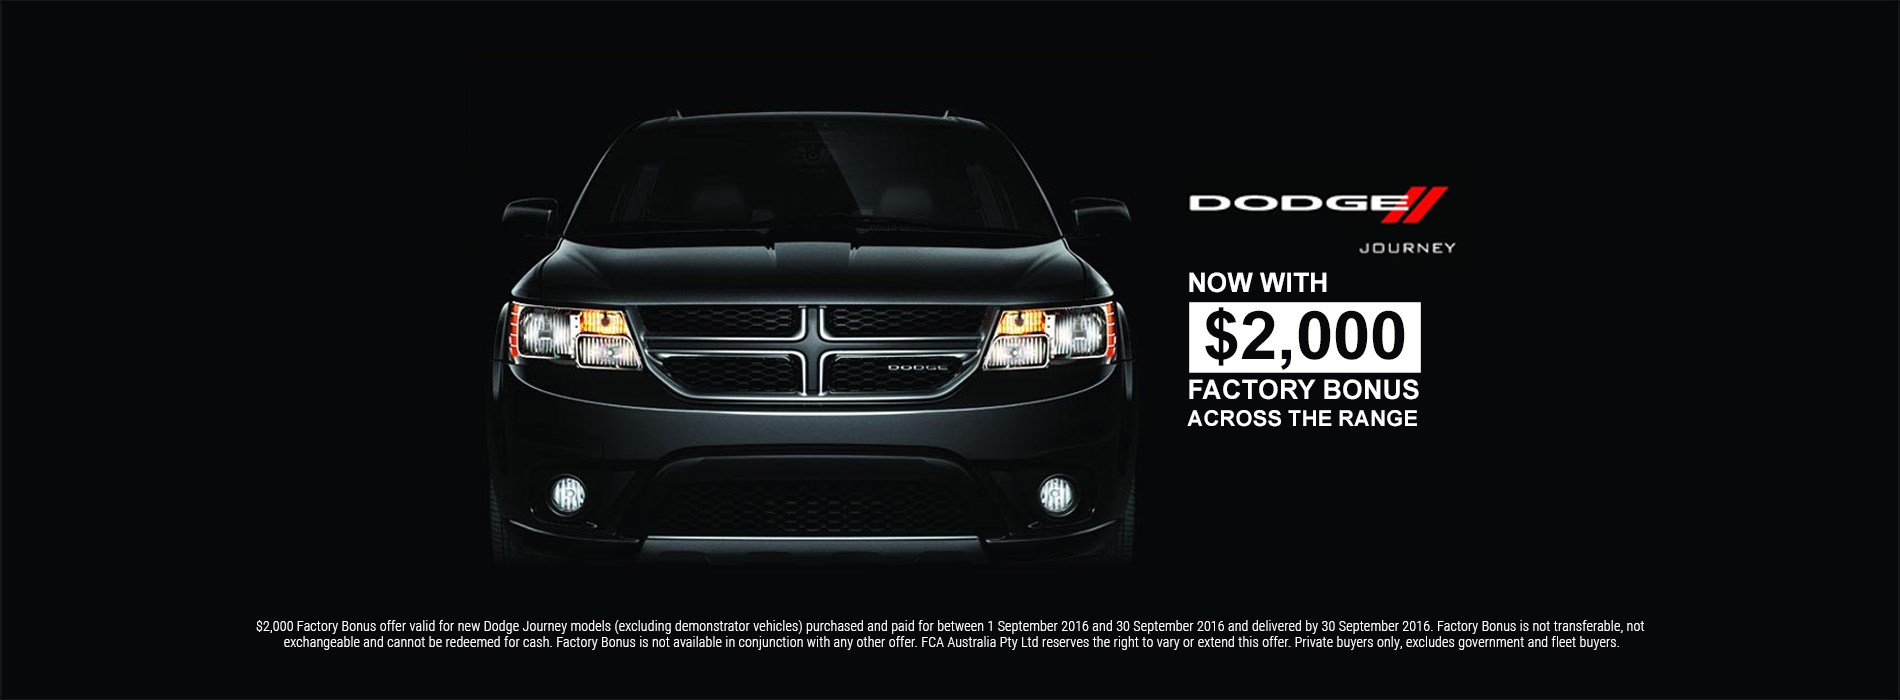 Dodge Journey Black exterior $2000 factory bonus offer